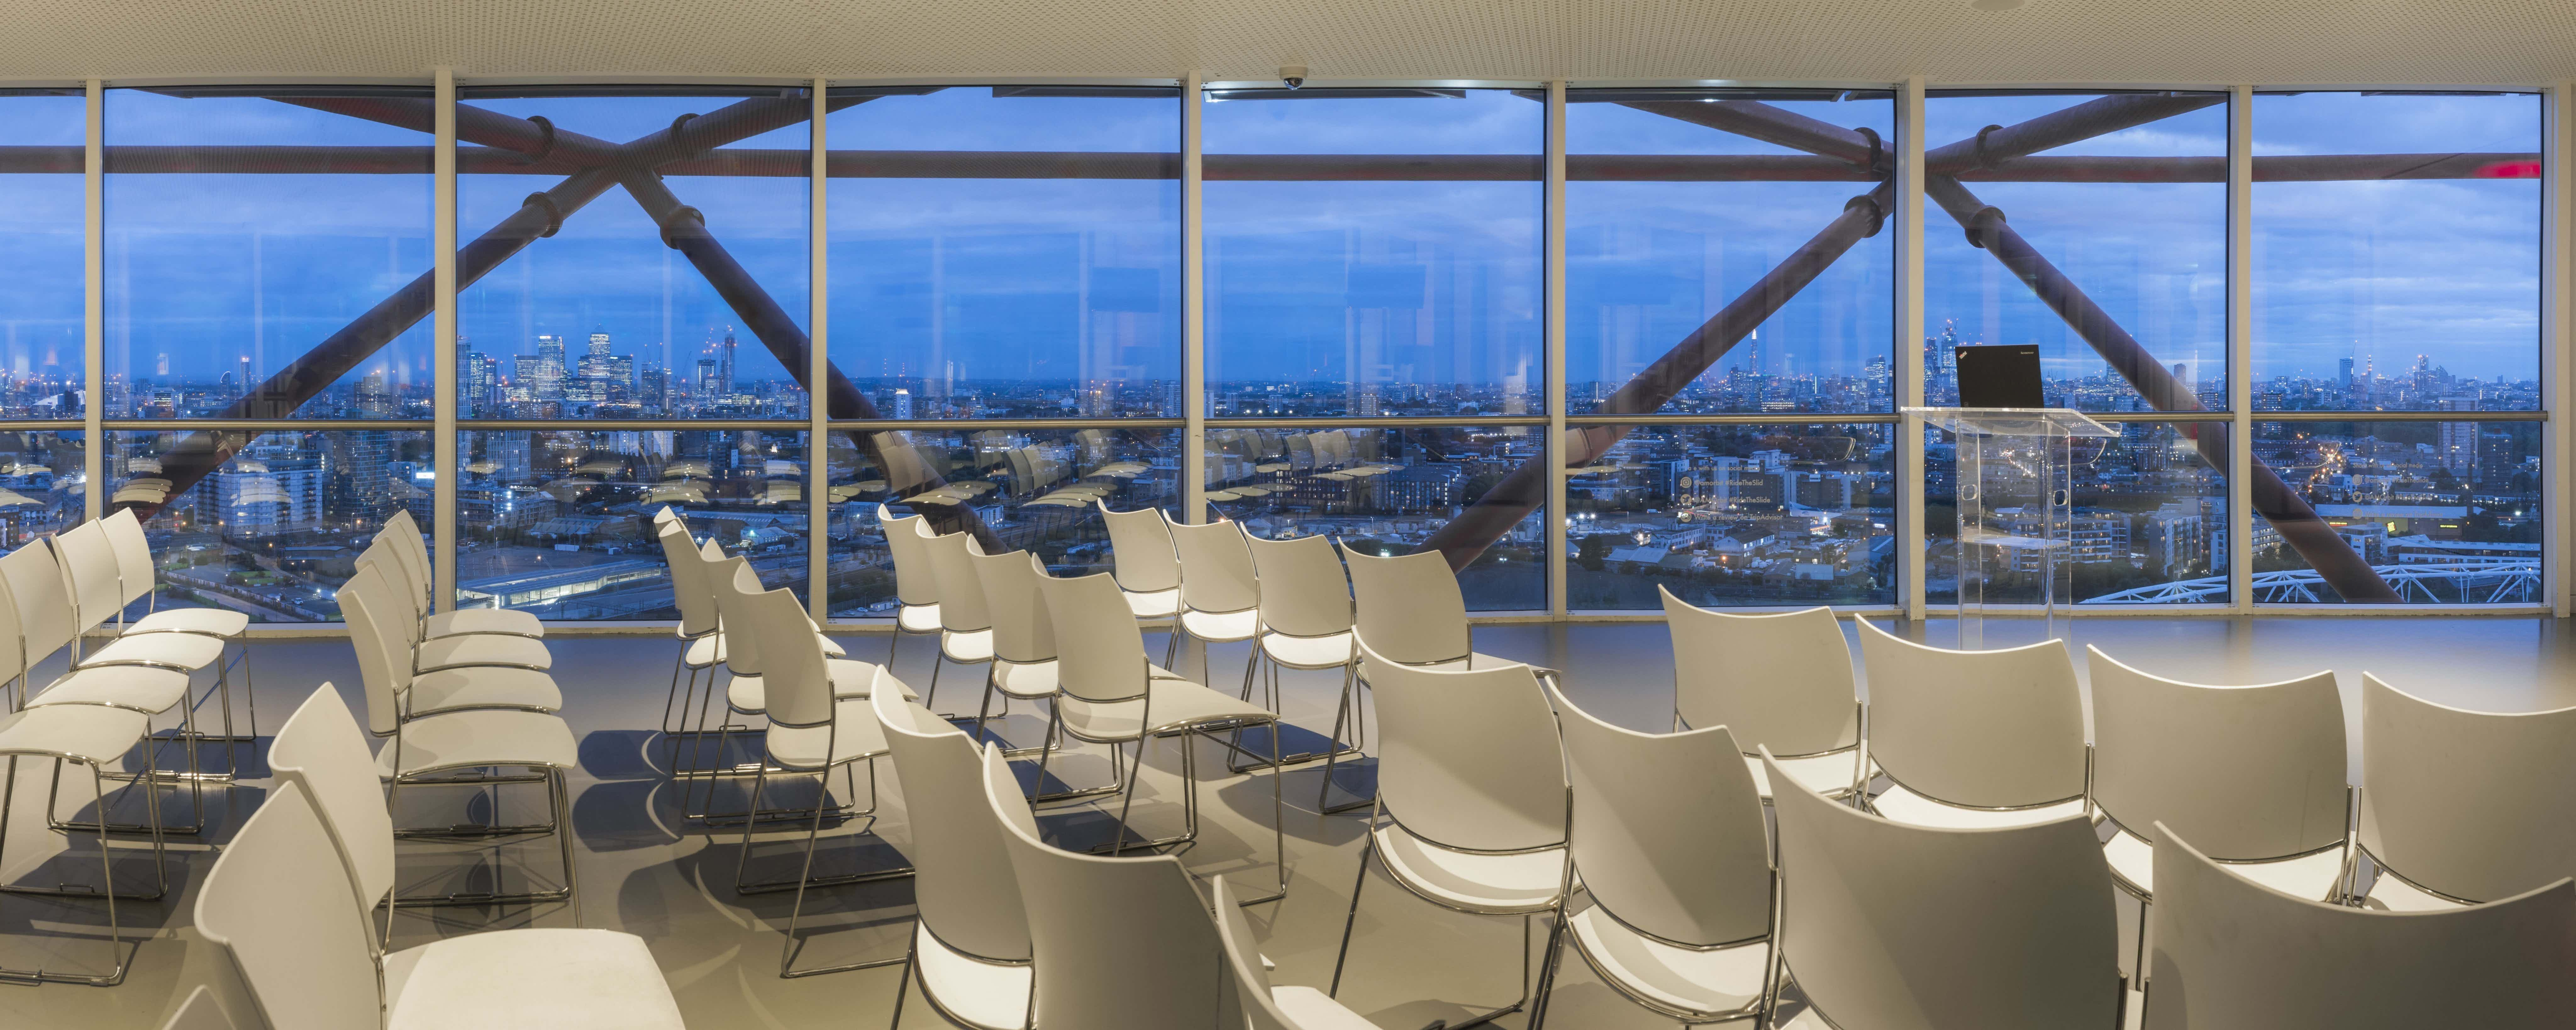 Conferences at ArcelorMittal Orbit, ArcelorMittal Orbit